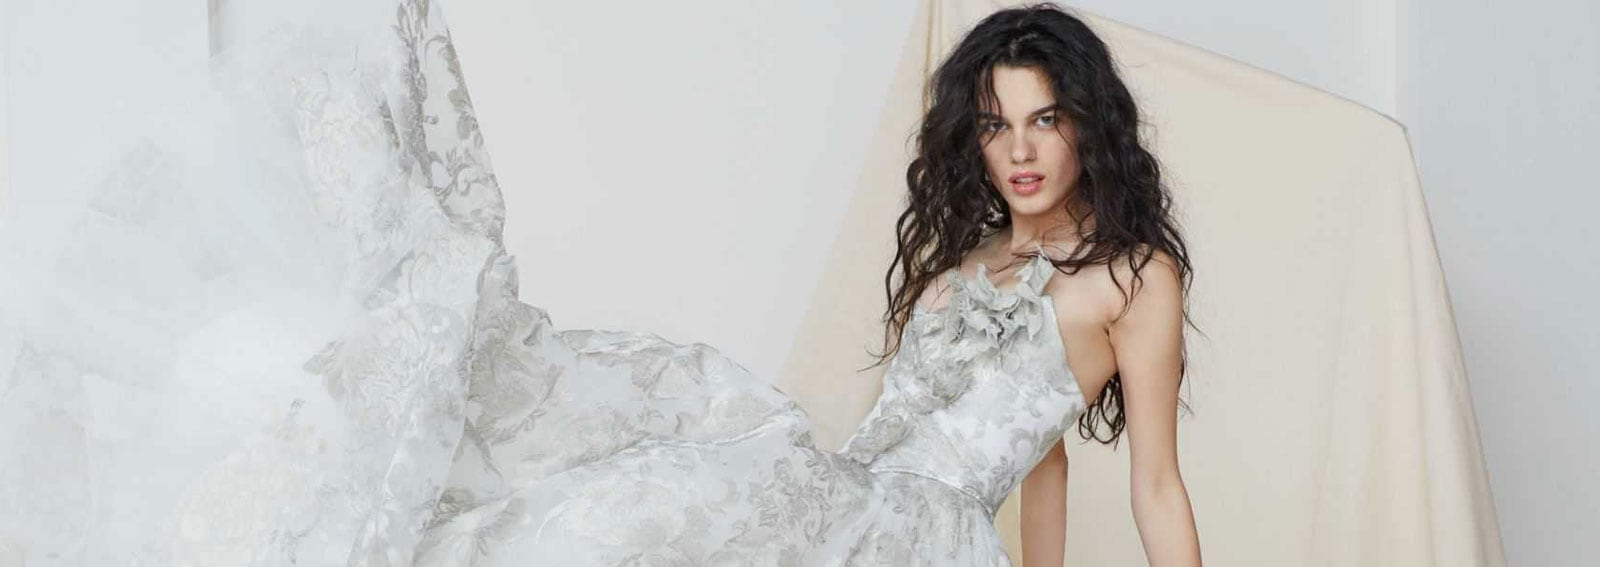 COVER-vivienne-westwood-bridal-couture-DESKTOP